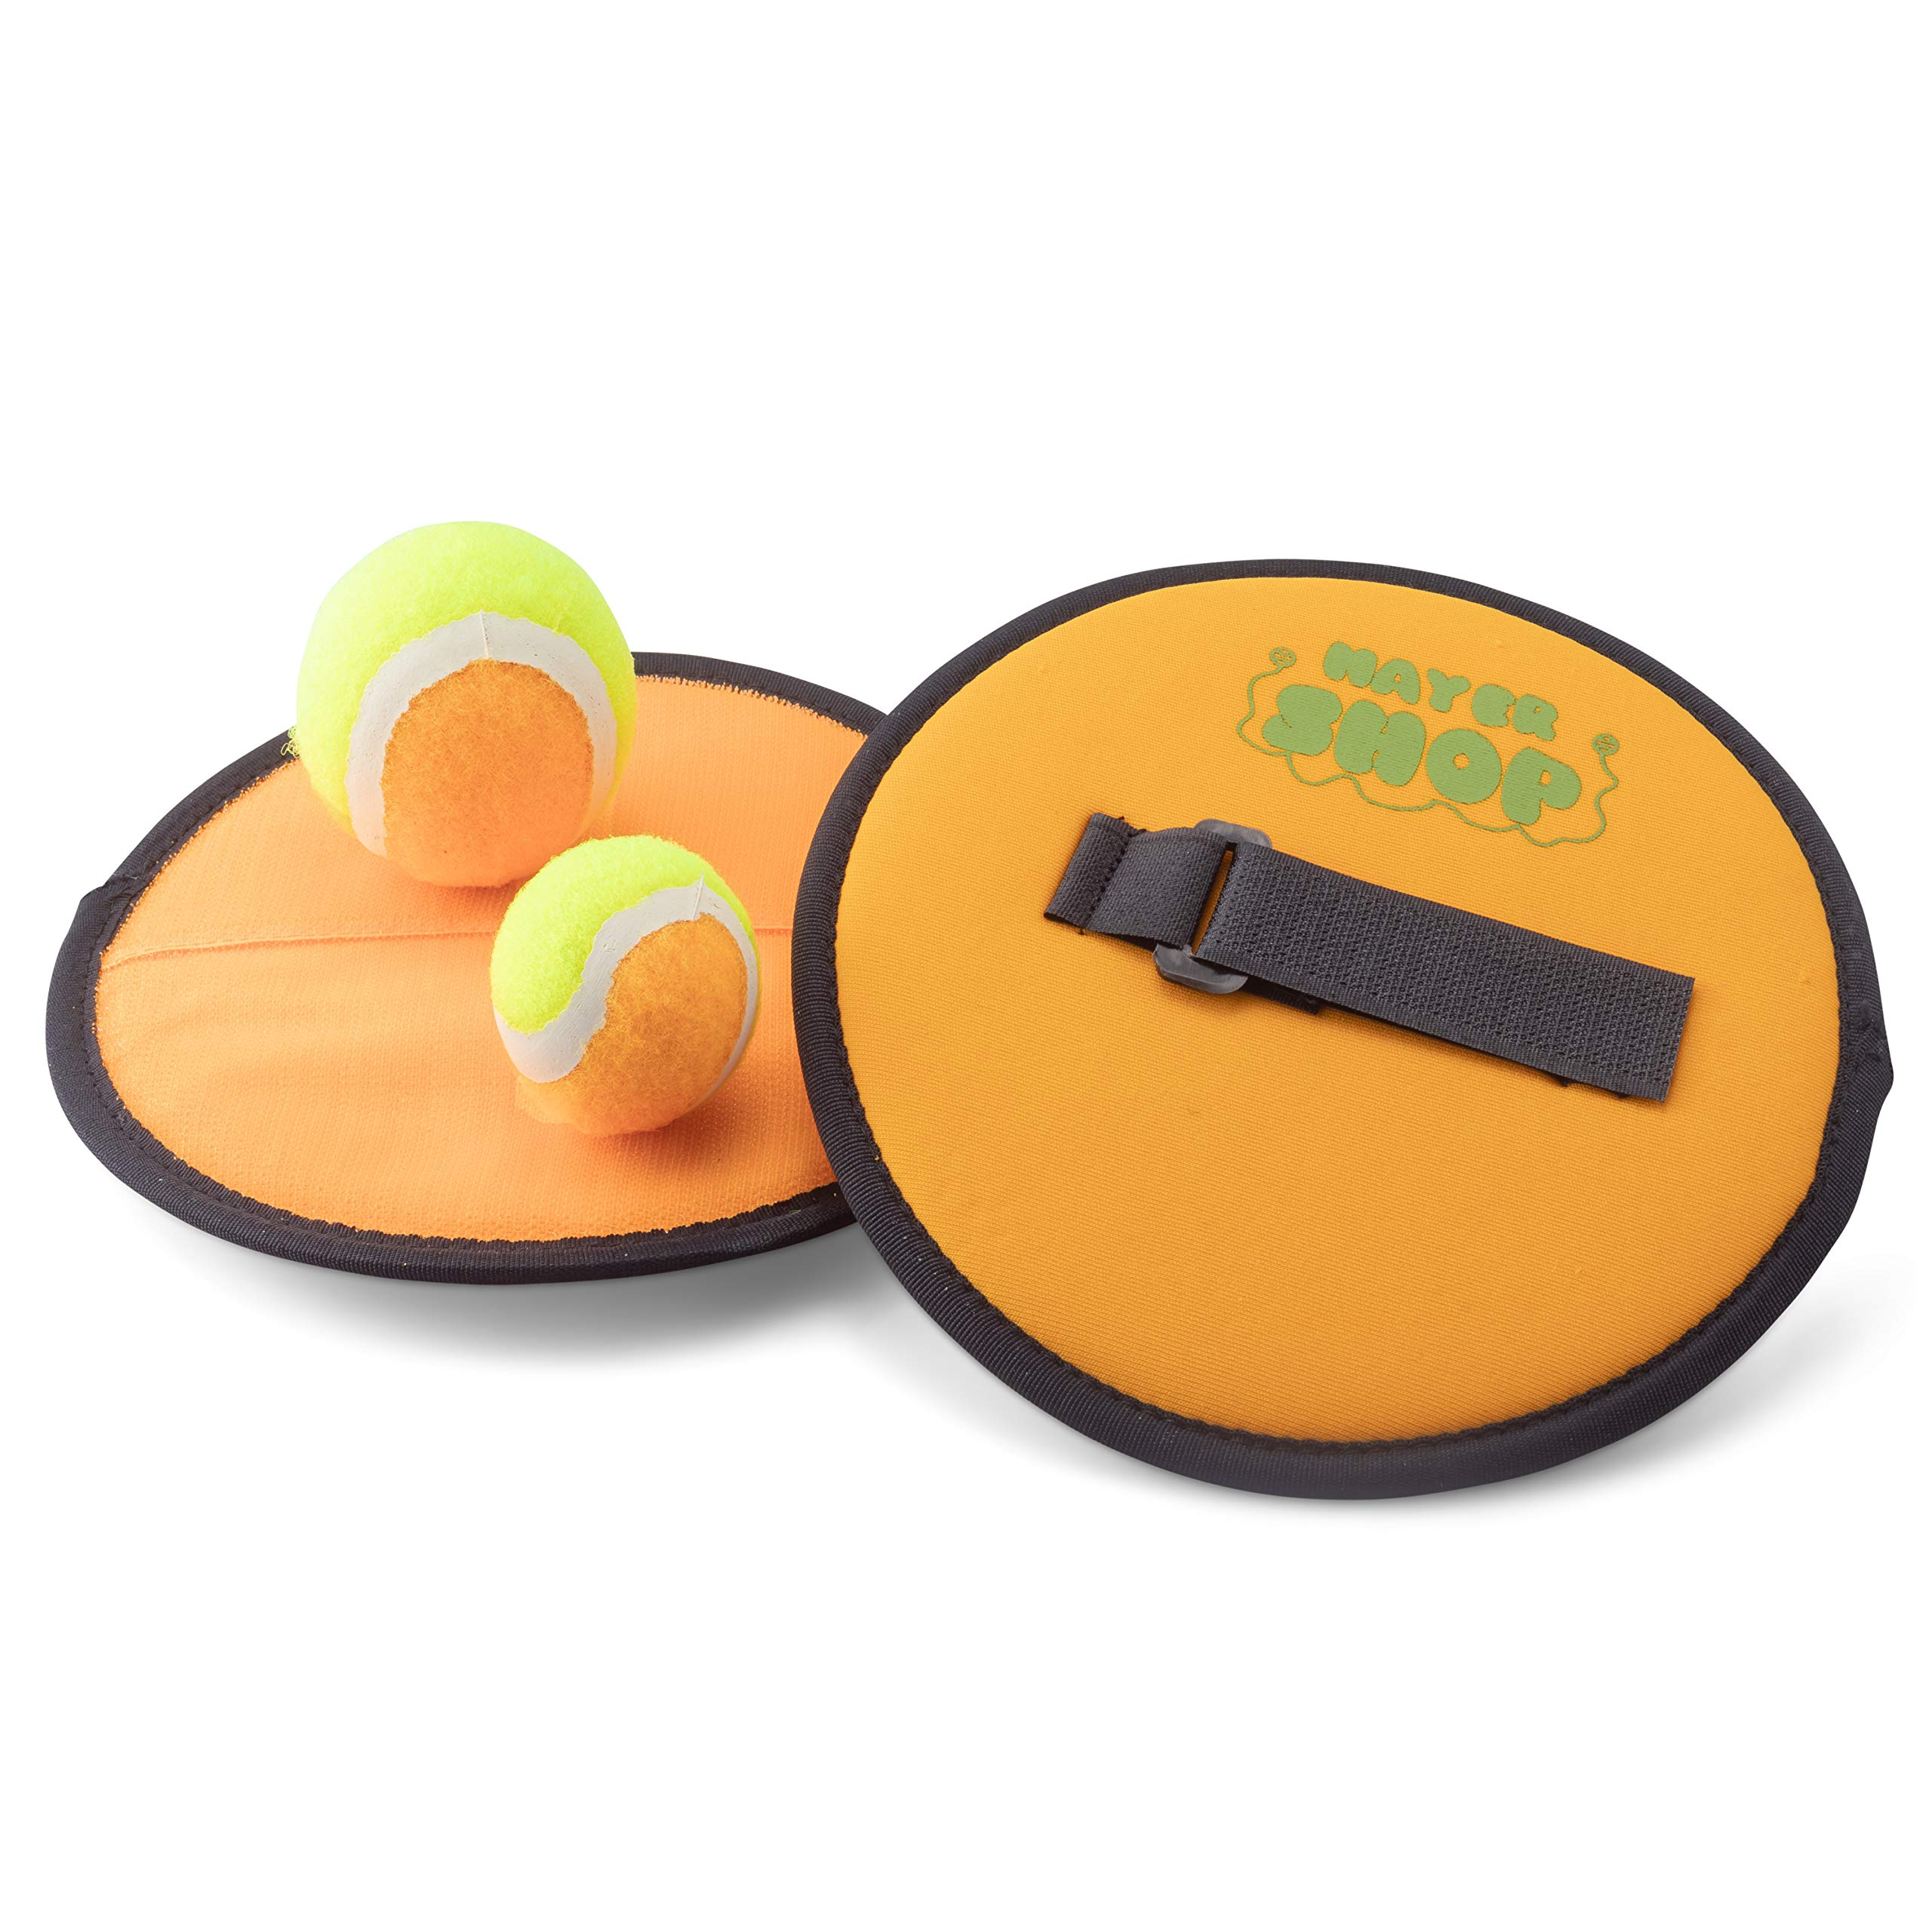 Mayershop Paddle Ball Catch Set - Toss and Catch Ball Set Includes 2 Paddles, 1 Large Ball and 1 Small Ball - Adjustable Paddles Made from Durable Recycled Plastic-Beach Paddle Ball Game by Mayershop